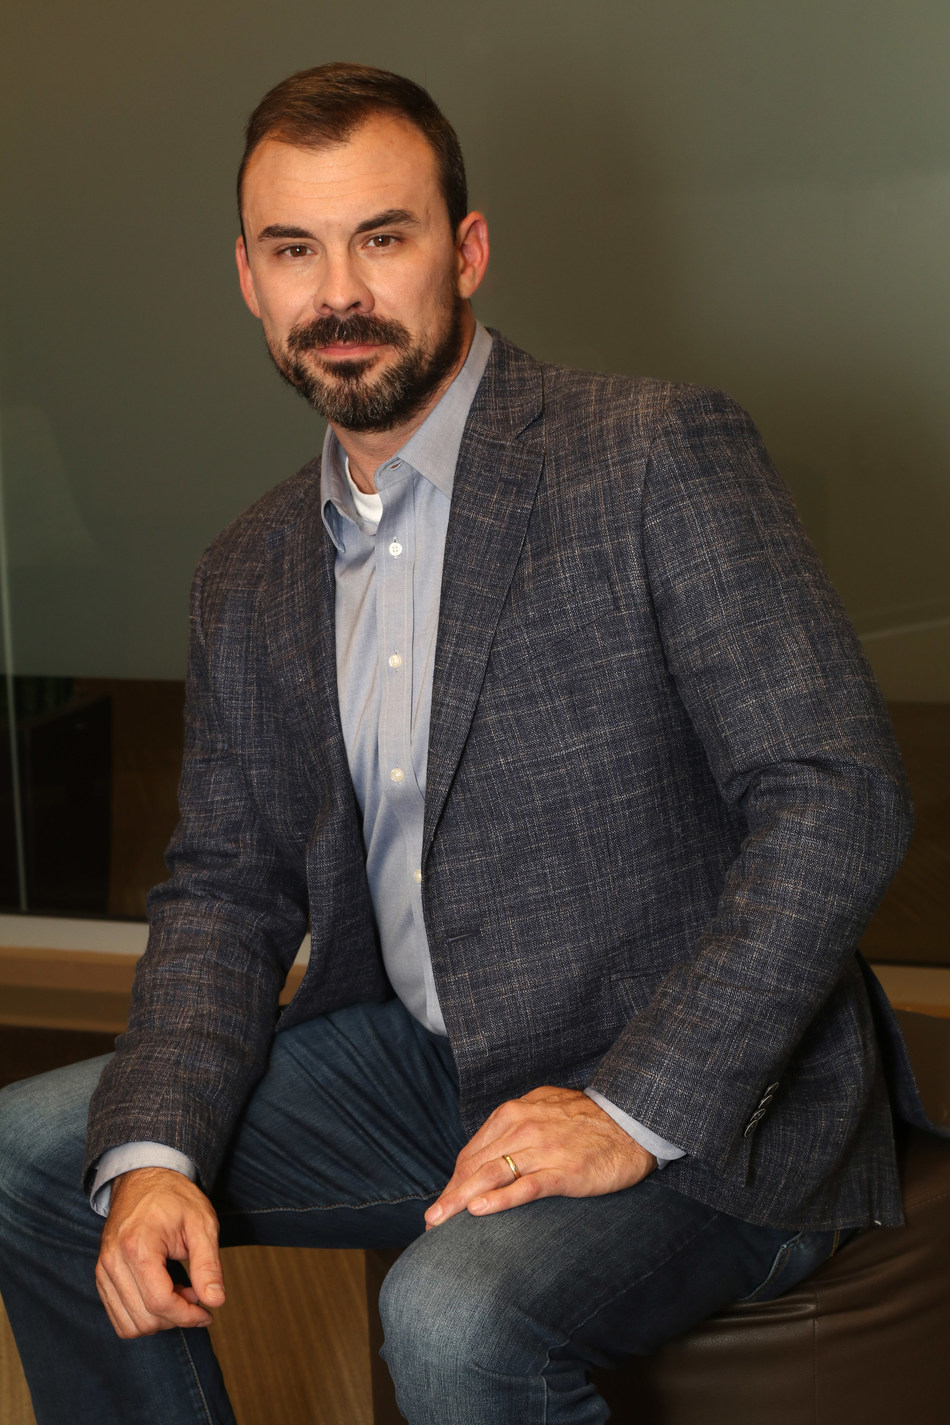 Blake Keller, PharmD, has joined Nashville-based RxGenomix as Chief Operating Officer.  The 18-year healthcare industry veteran is joining the most comprehensive pharmacist-led pharmacogenomics solutions company as it accelerates growth and innovation initiatives